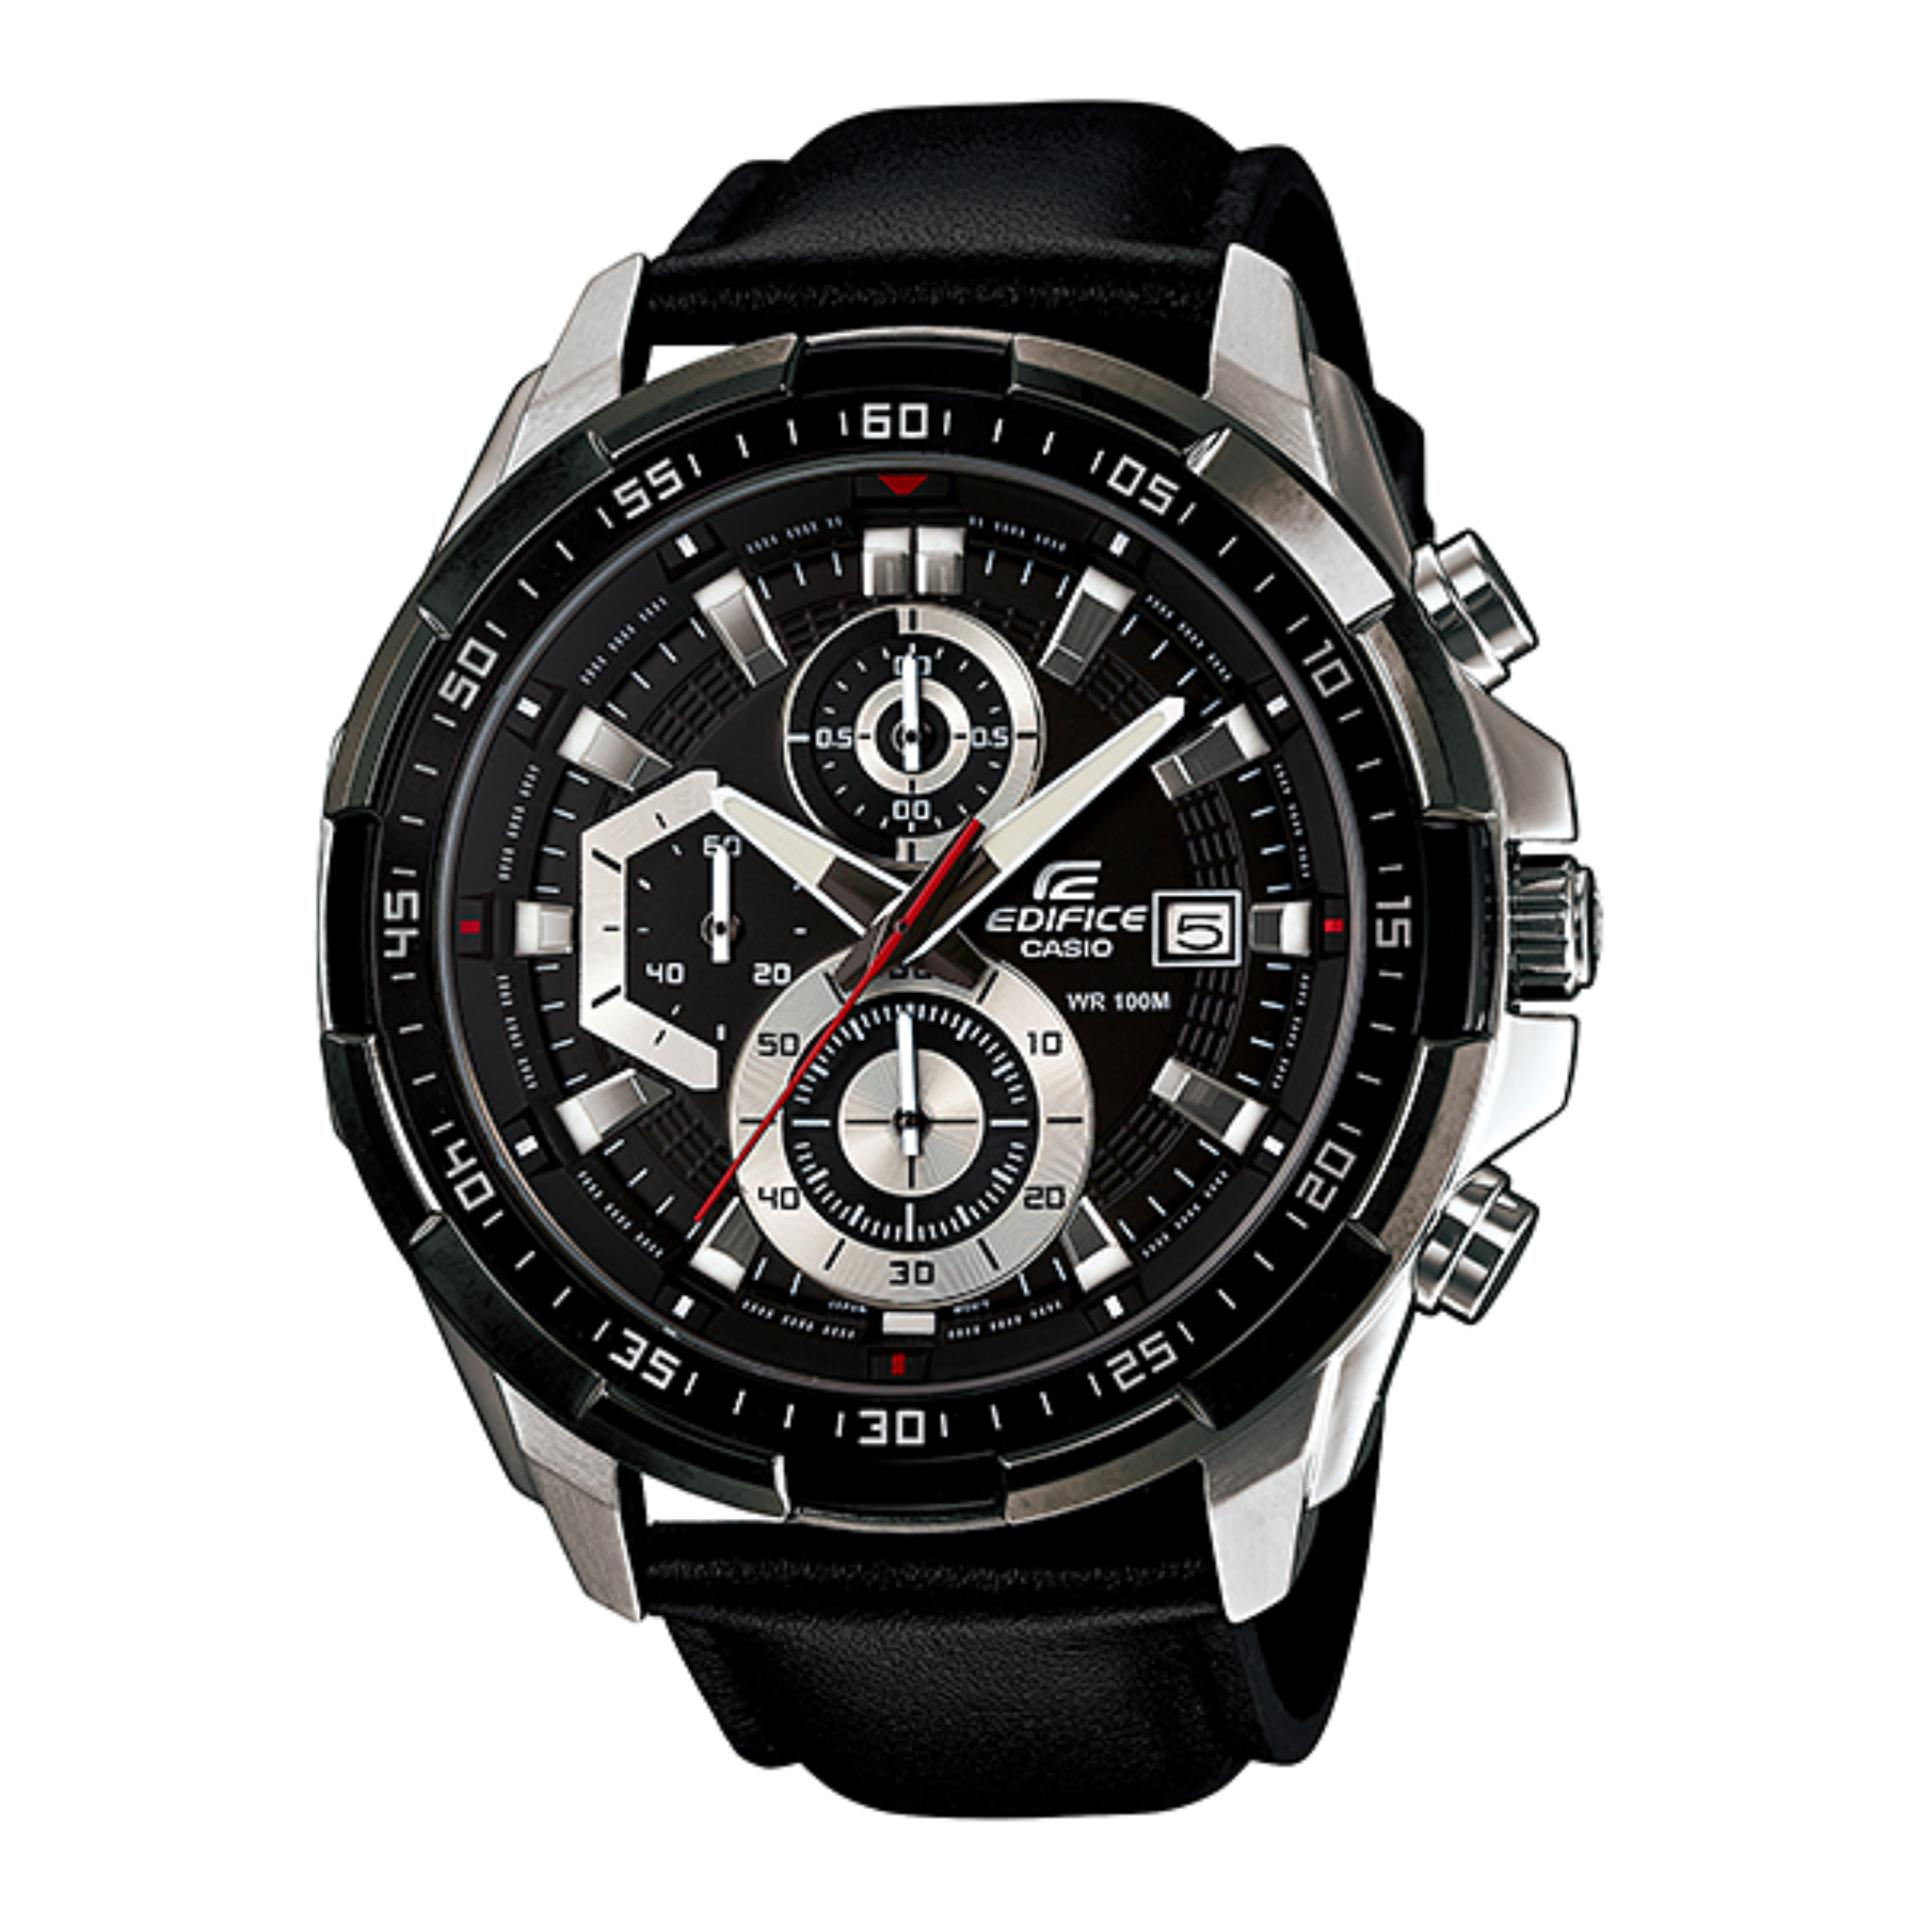 Jam Tangan Pria Casio Edifice EFR-539L-1AV Strapp Leather .